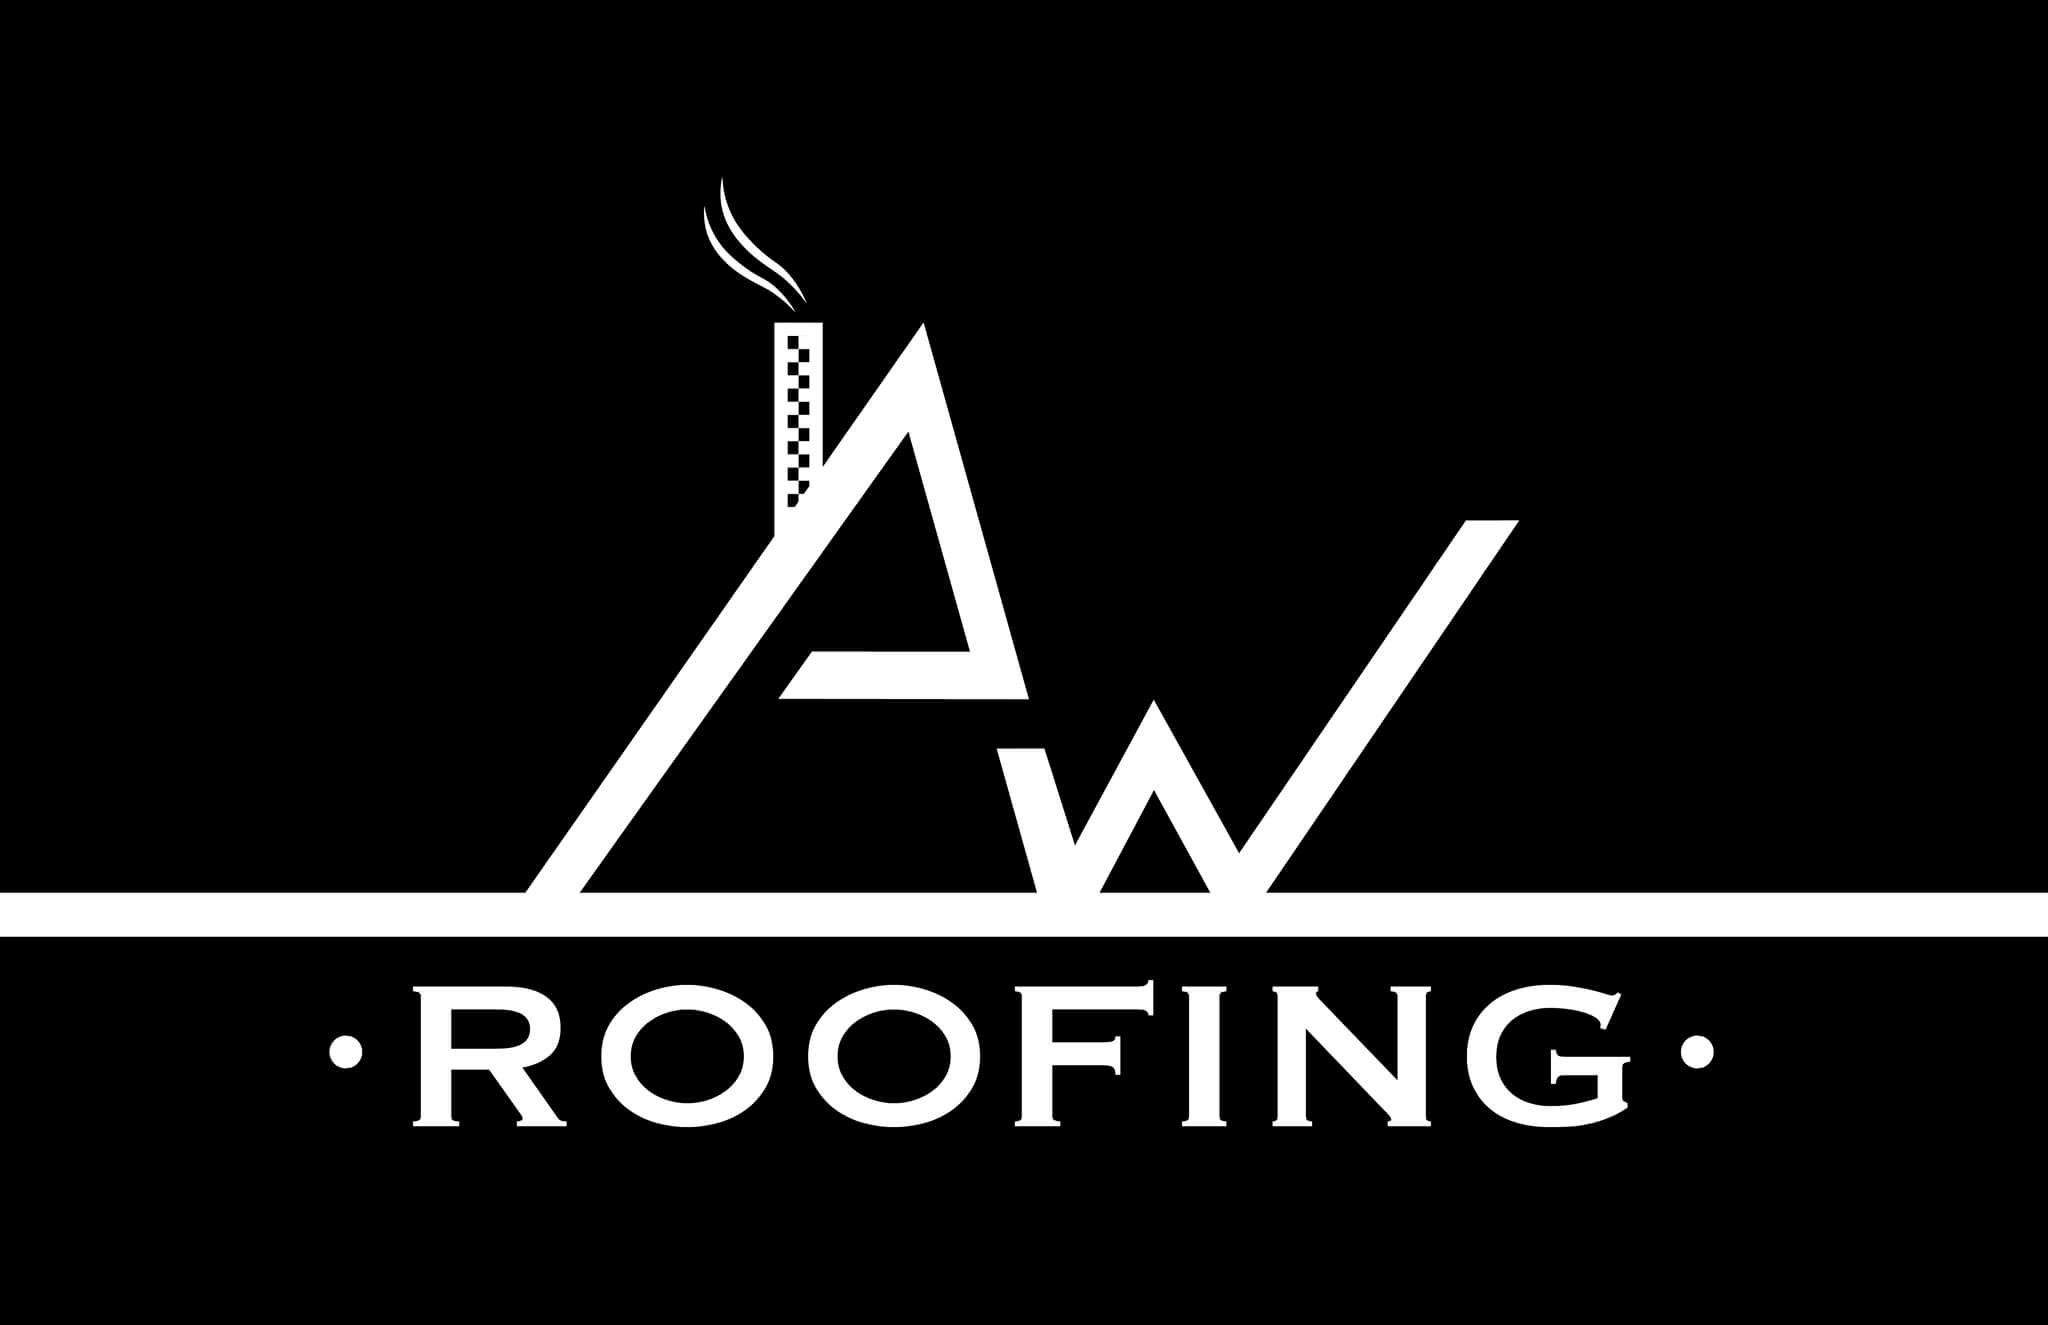 A.W Roofing